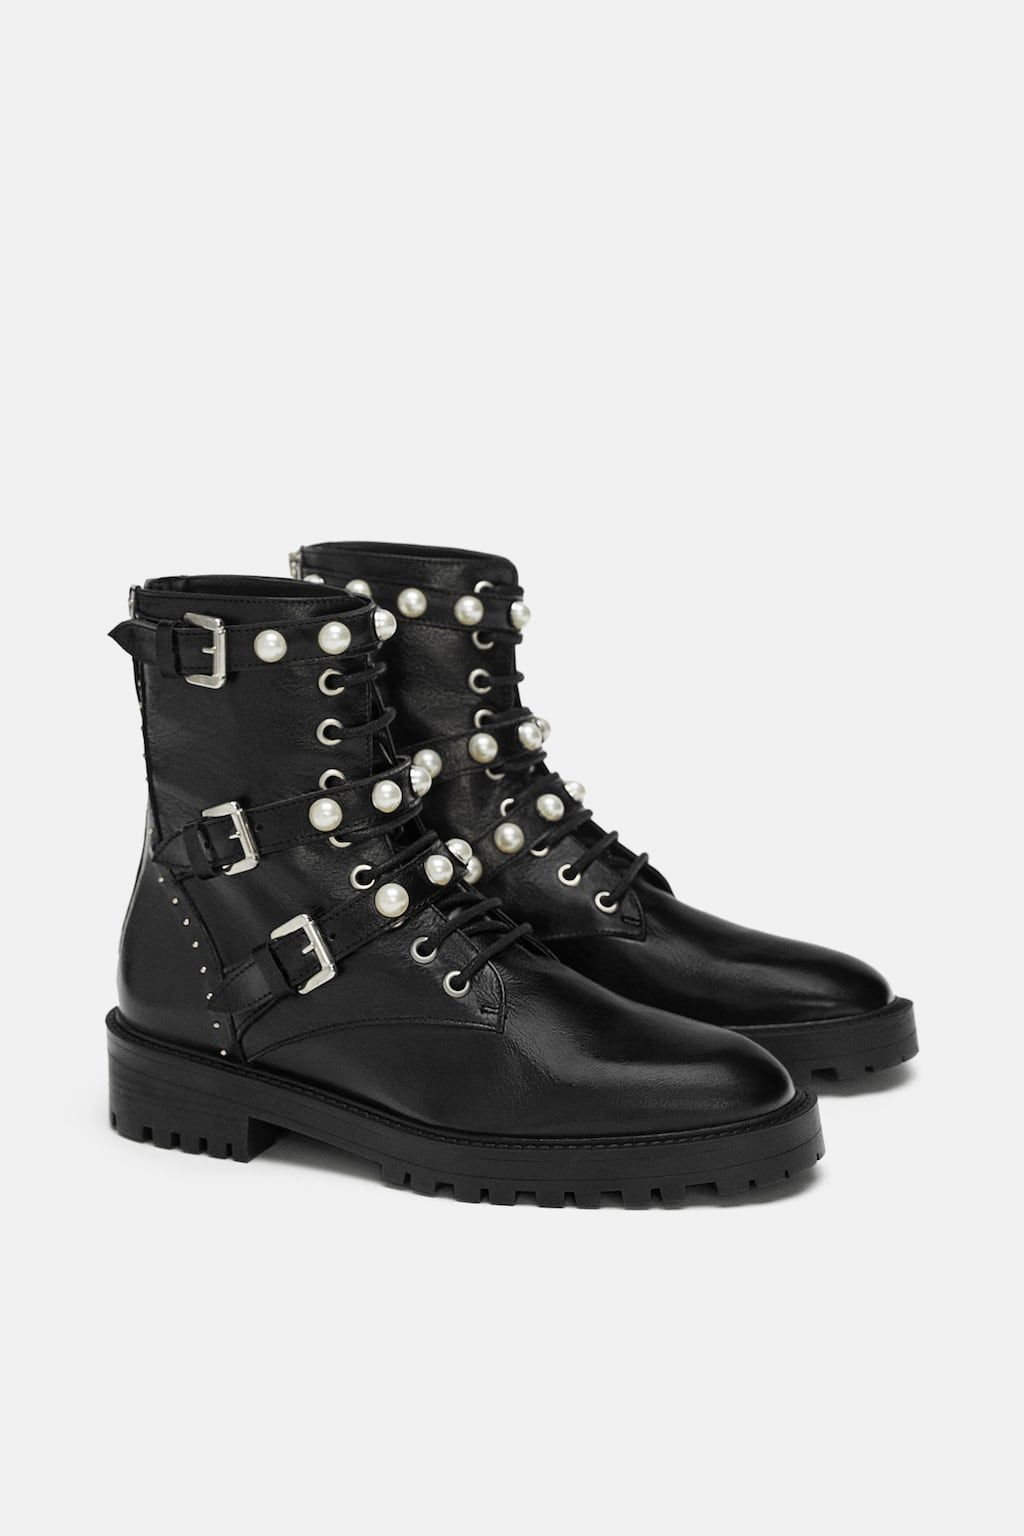 Image 6 of LEATHER ANKLE BOOTS WITH FAUX PEARLS from Zara ... 589a1d838a